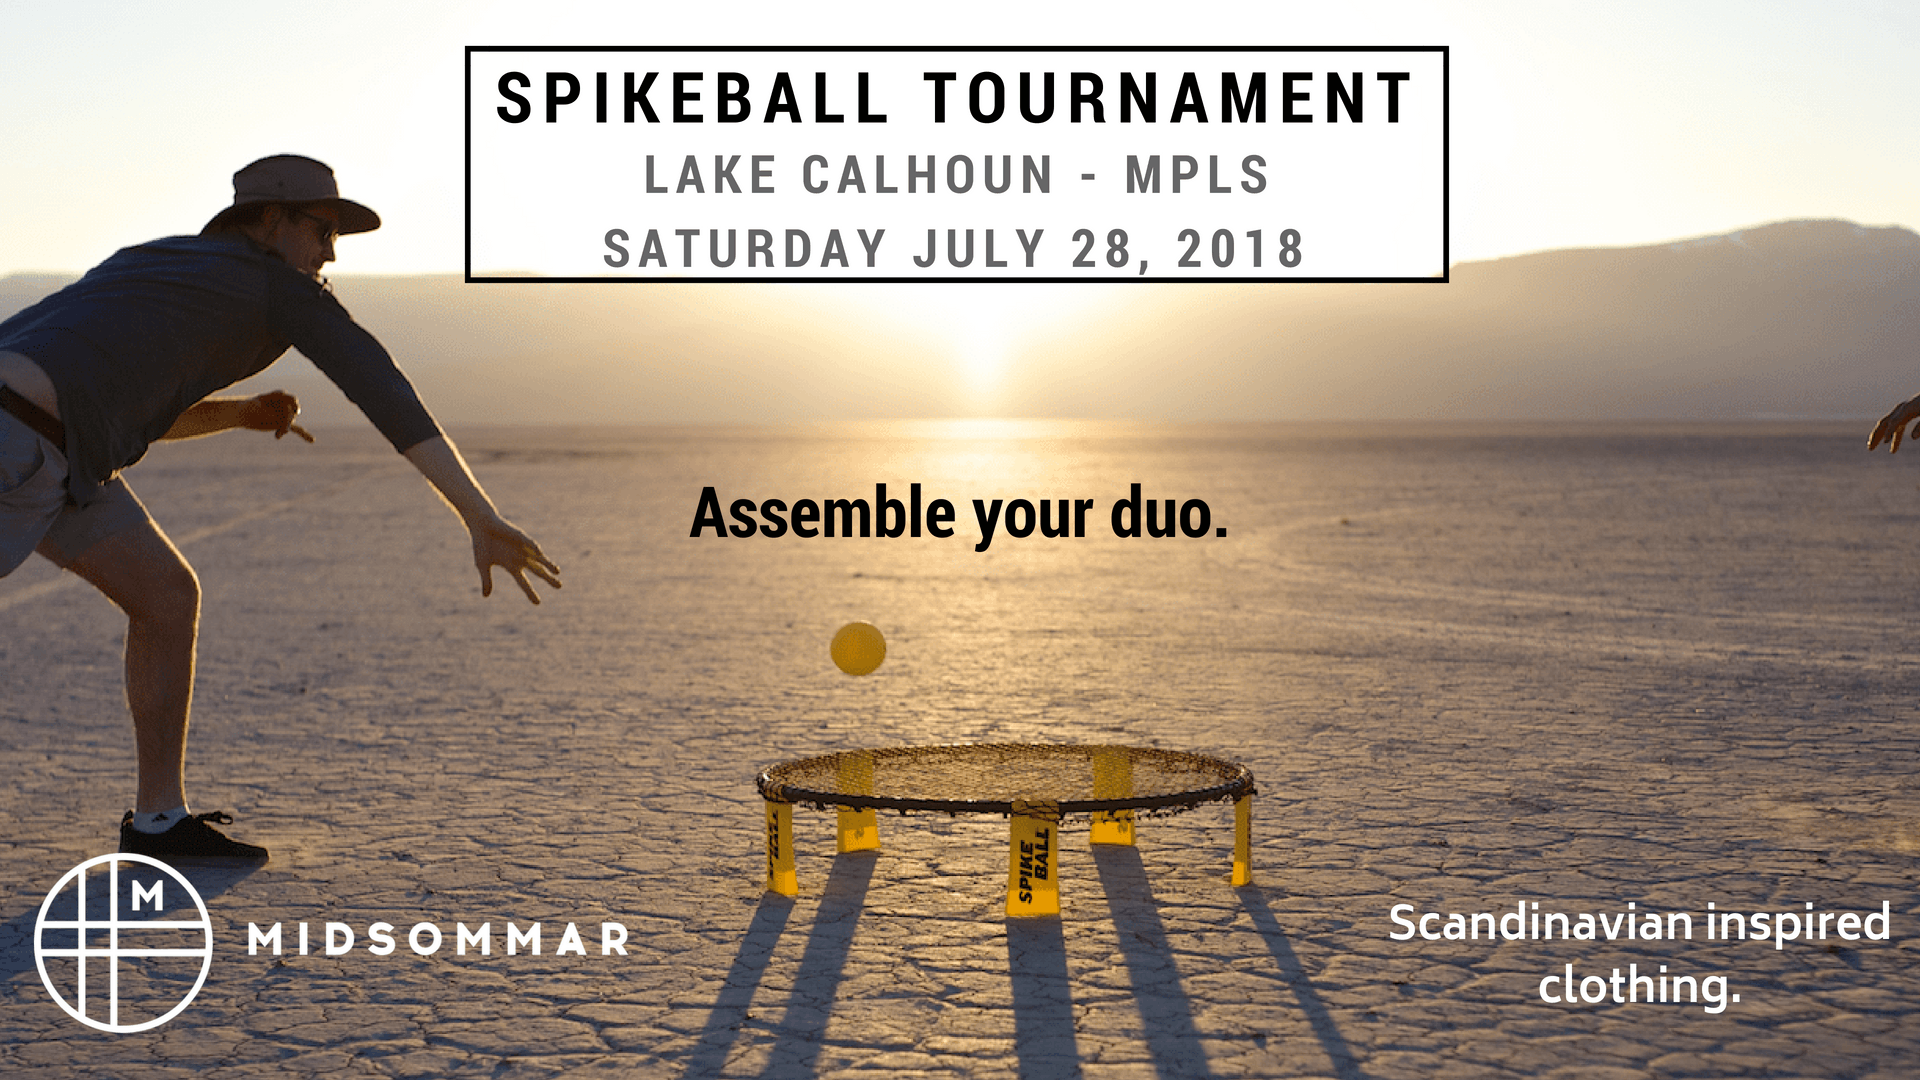 Midsommar Spikeball Tournament - Minneapolis